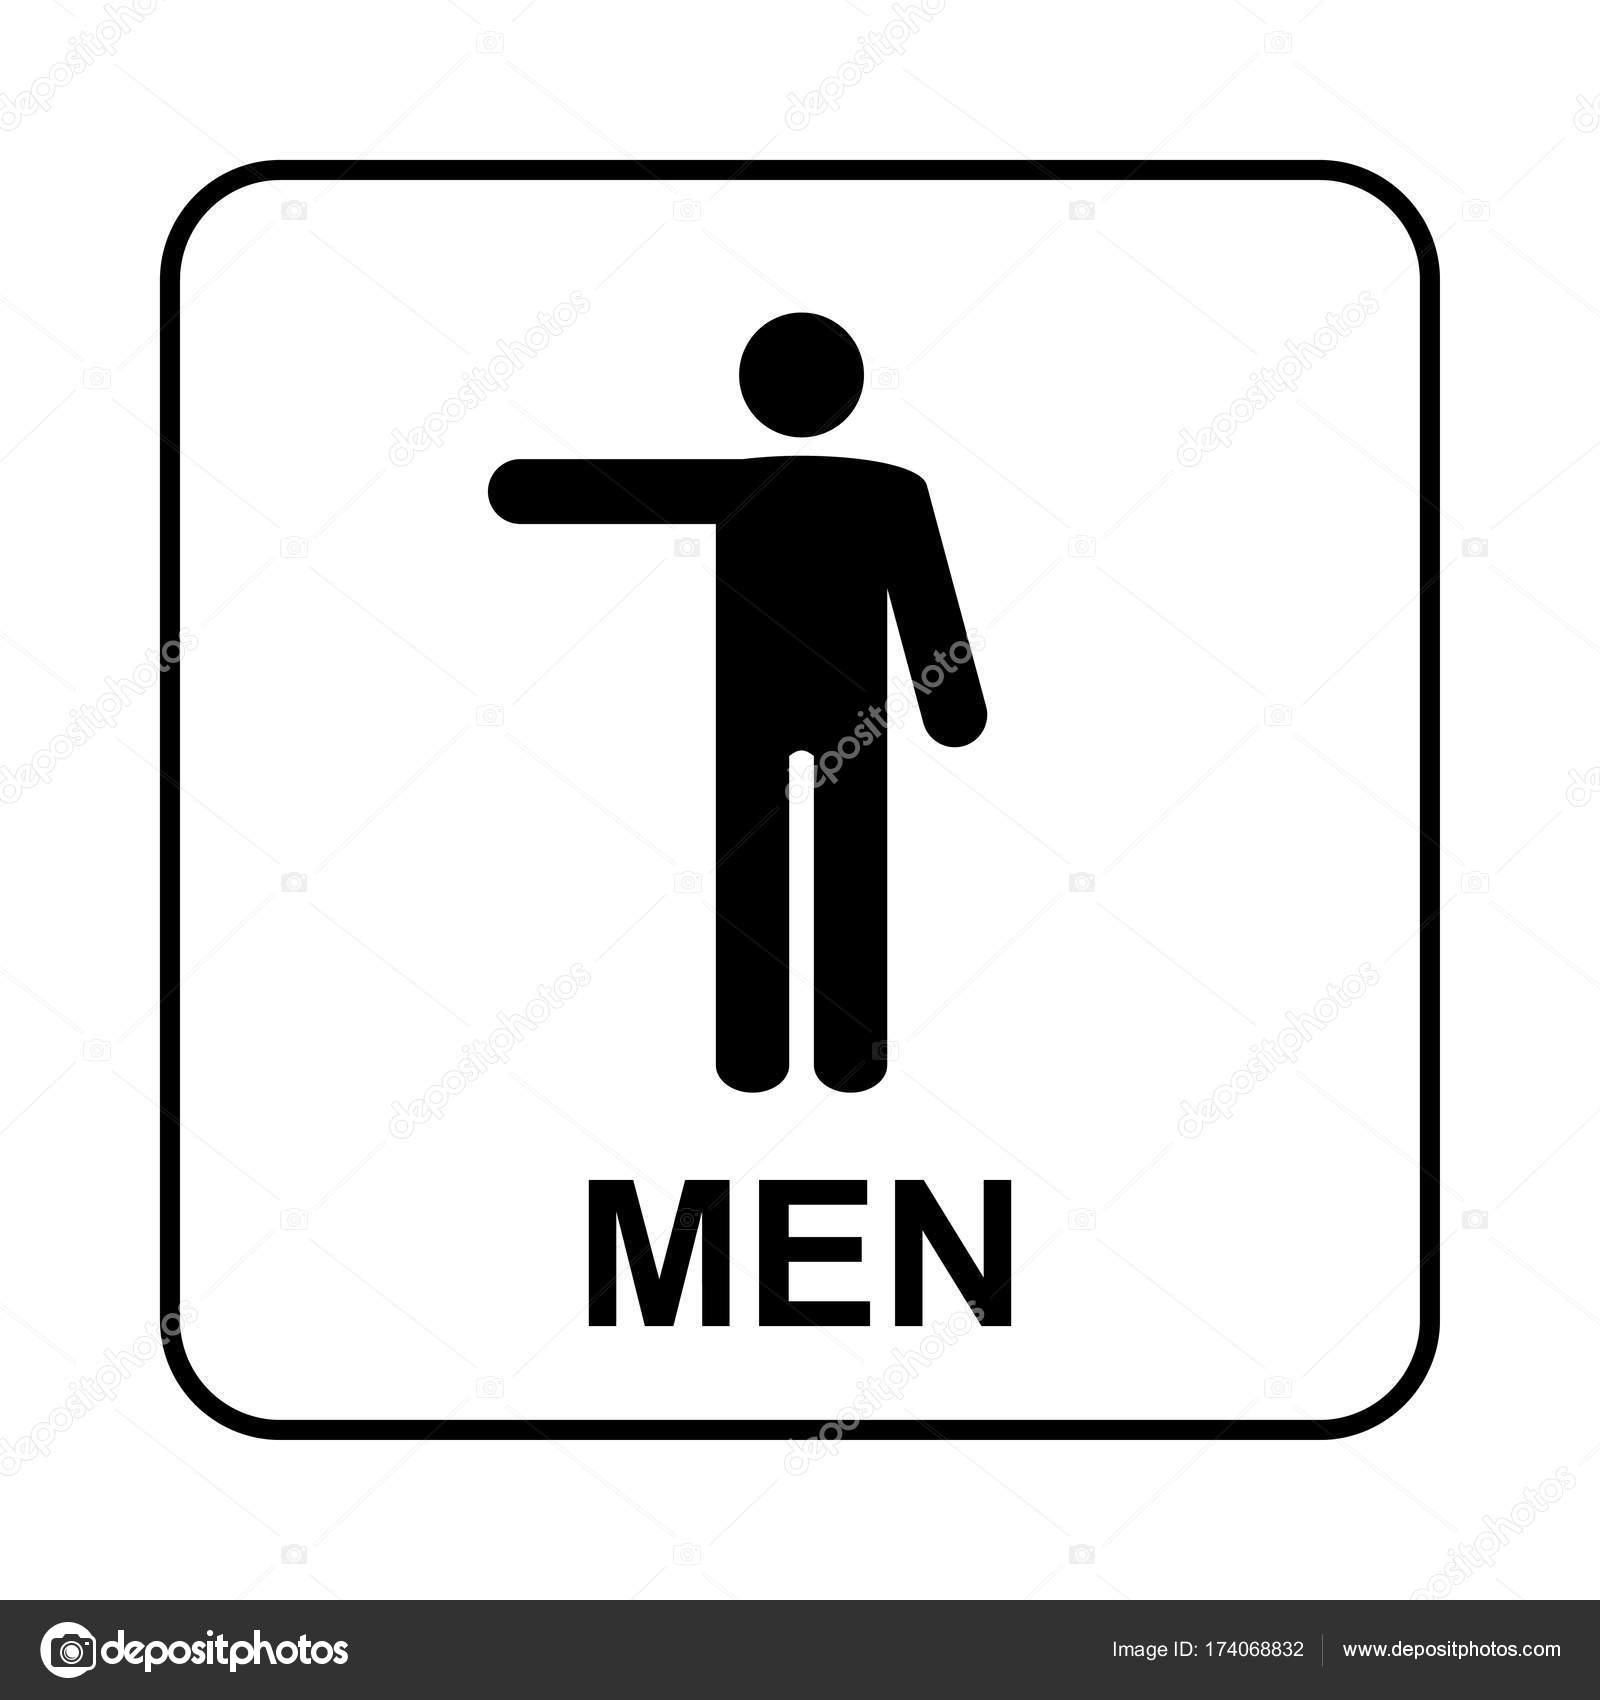 Toilet sign wc men stock vector bumerss 174068832 toilet sign wc men stock vector biocorpaavc Choice Image